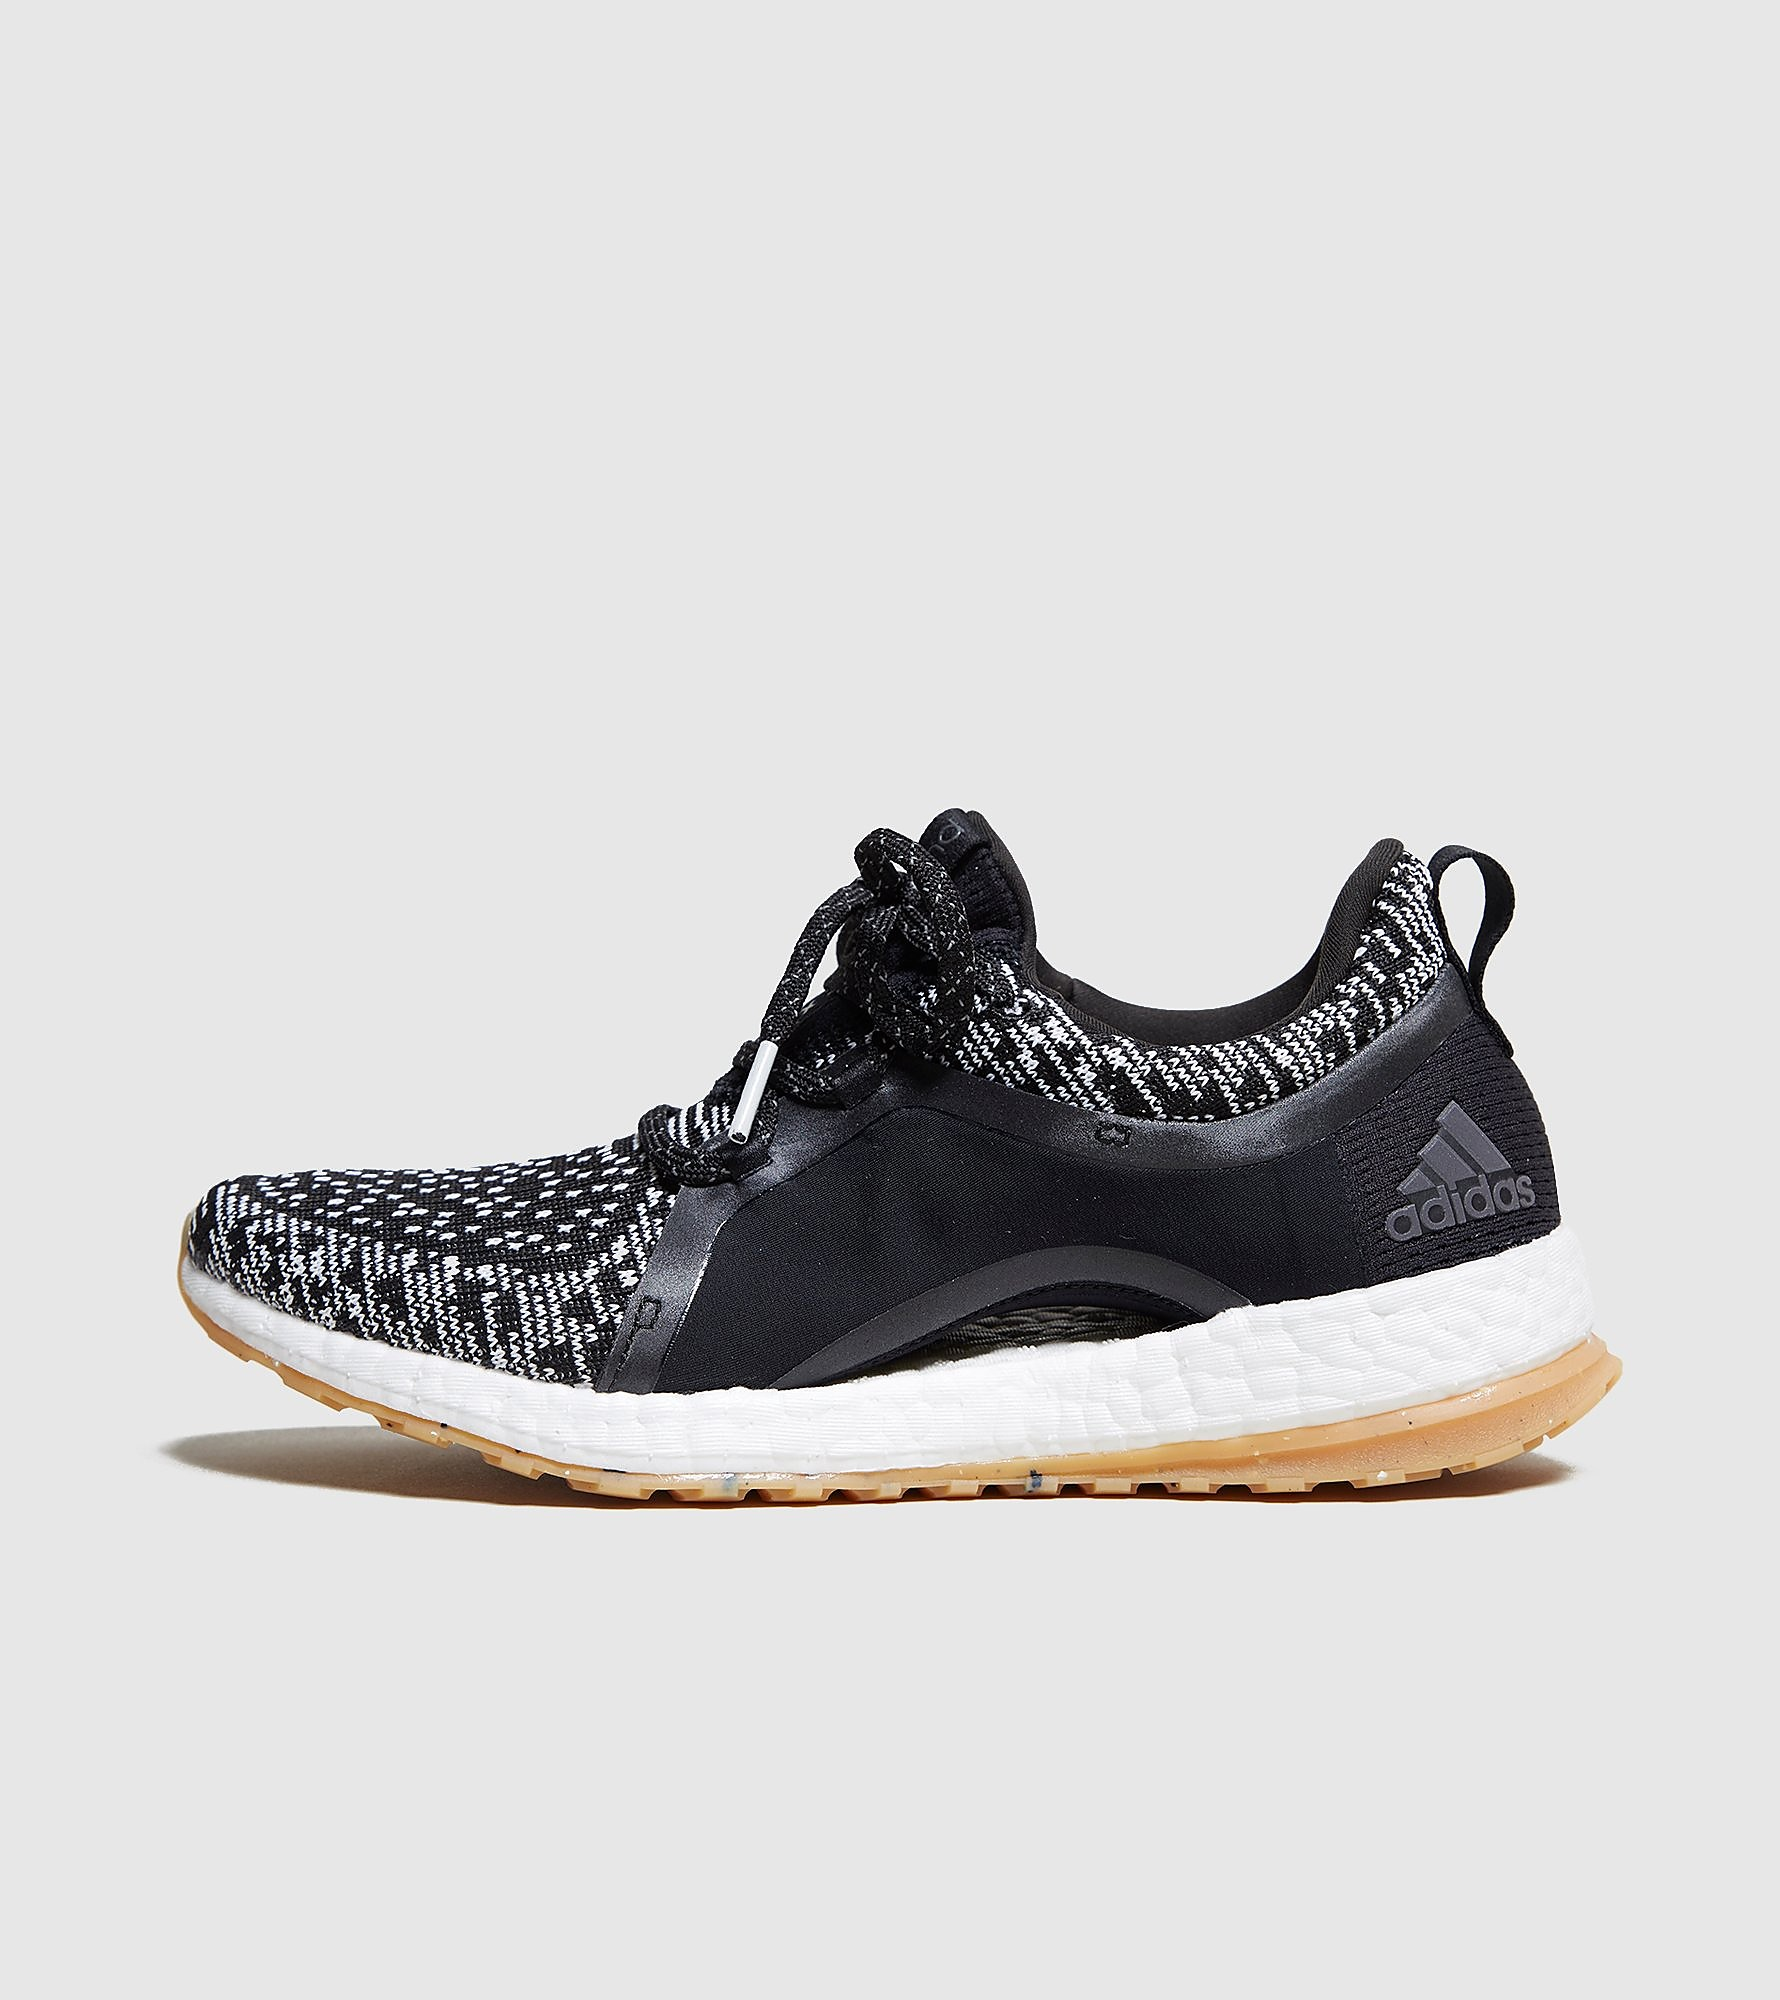 adidas Pure Boost All Terrain Women's